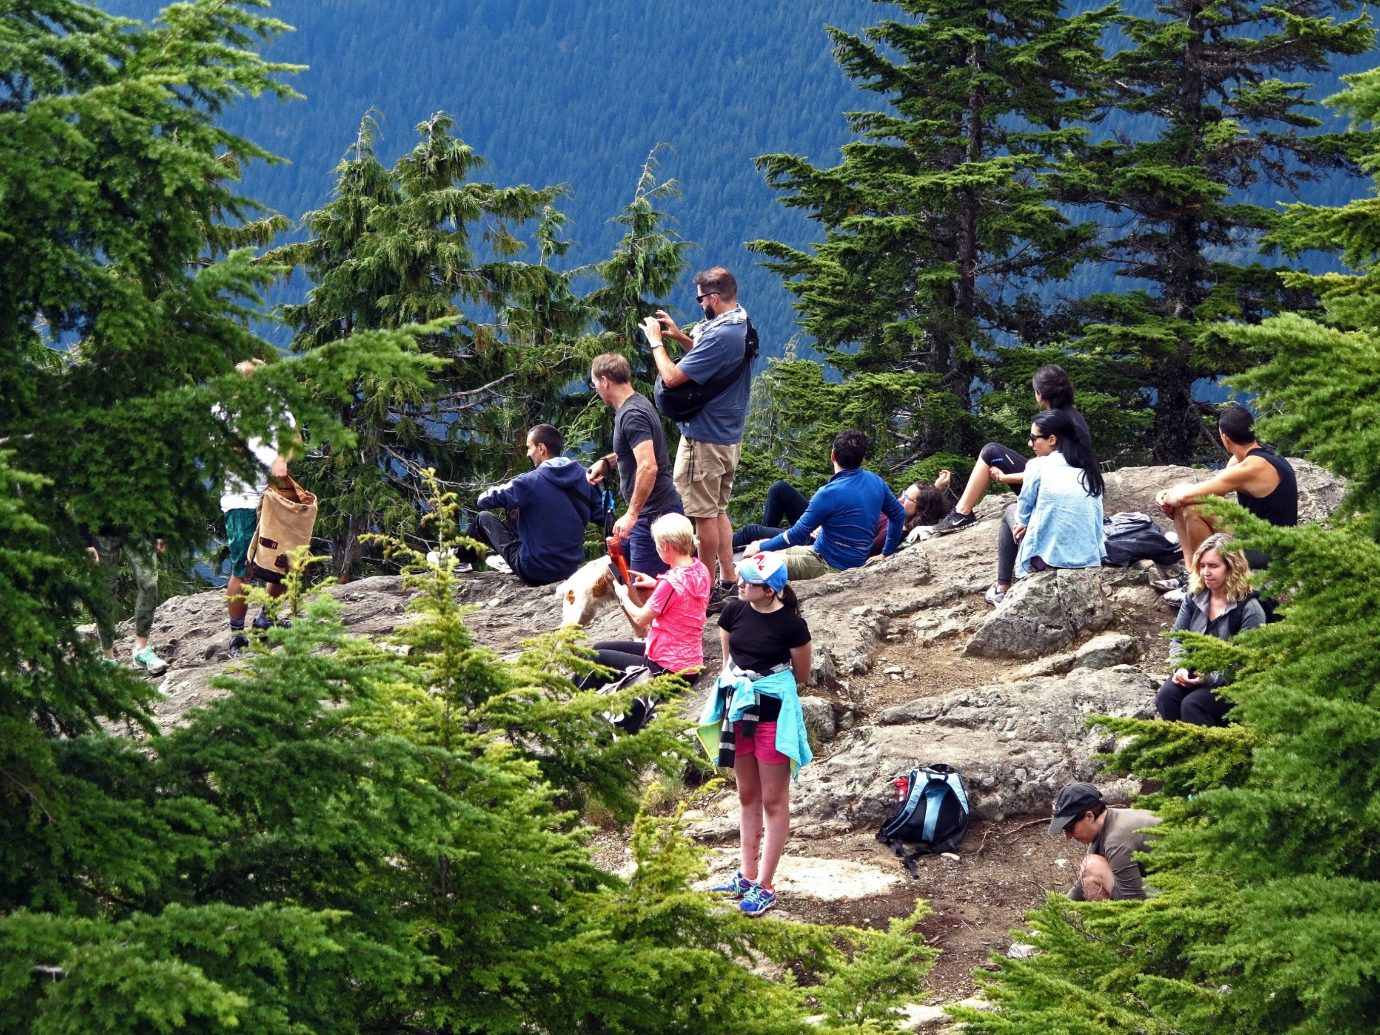 Health + Wellness tree Trip Ideas outdoor conifer people wilderness Forest Adventure outdoor recreation plant walking hiking hill backpacking trail Jungle park wooded hillside wood Garden